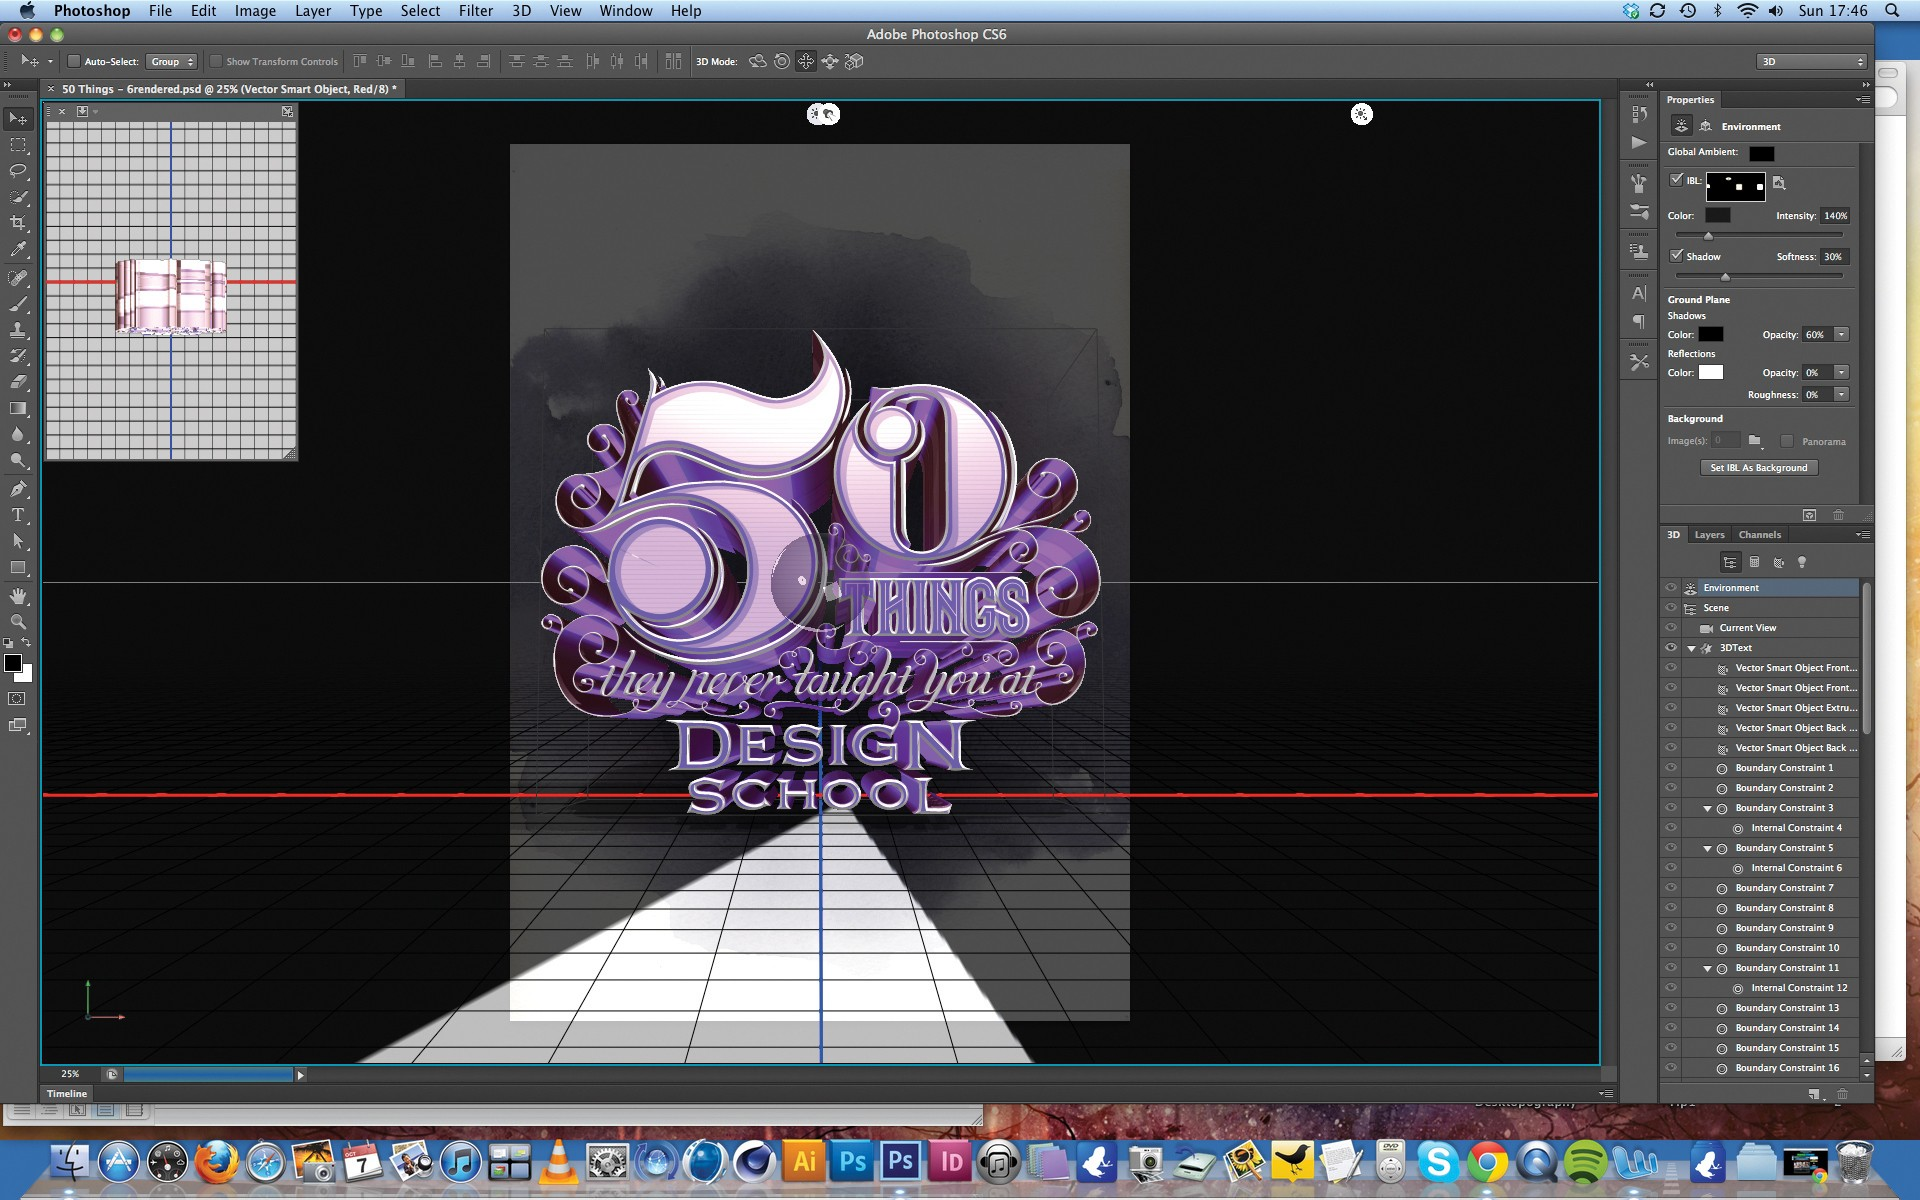 3d type tutorial create 3d type using photoshop cs6 for Make 3d online